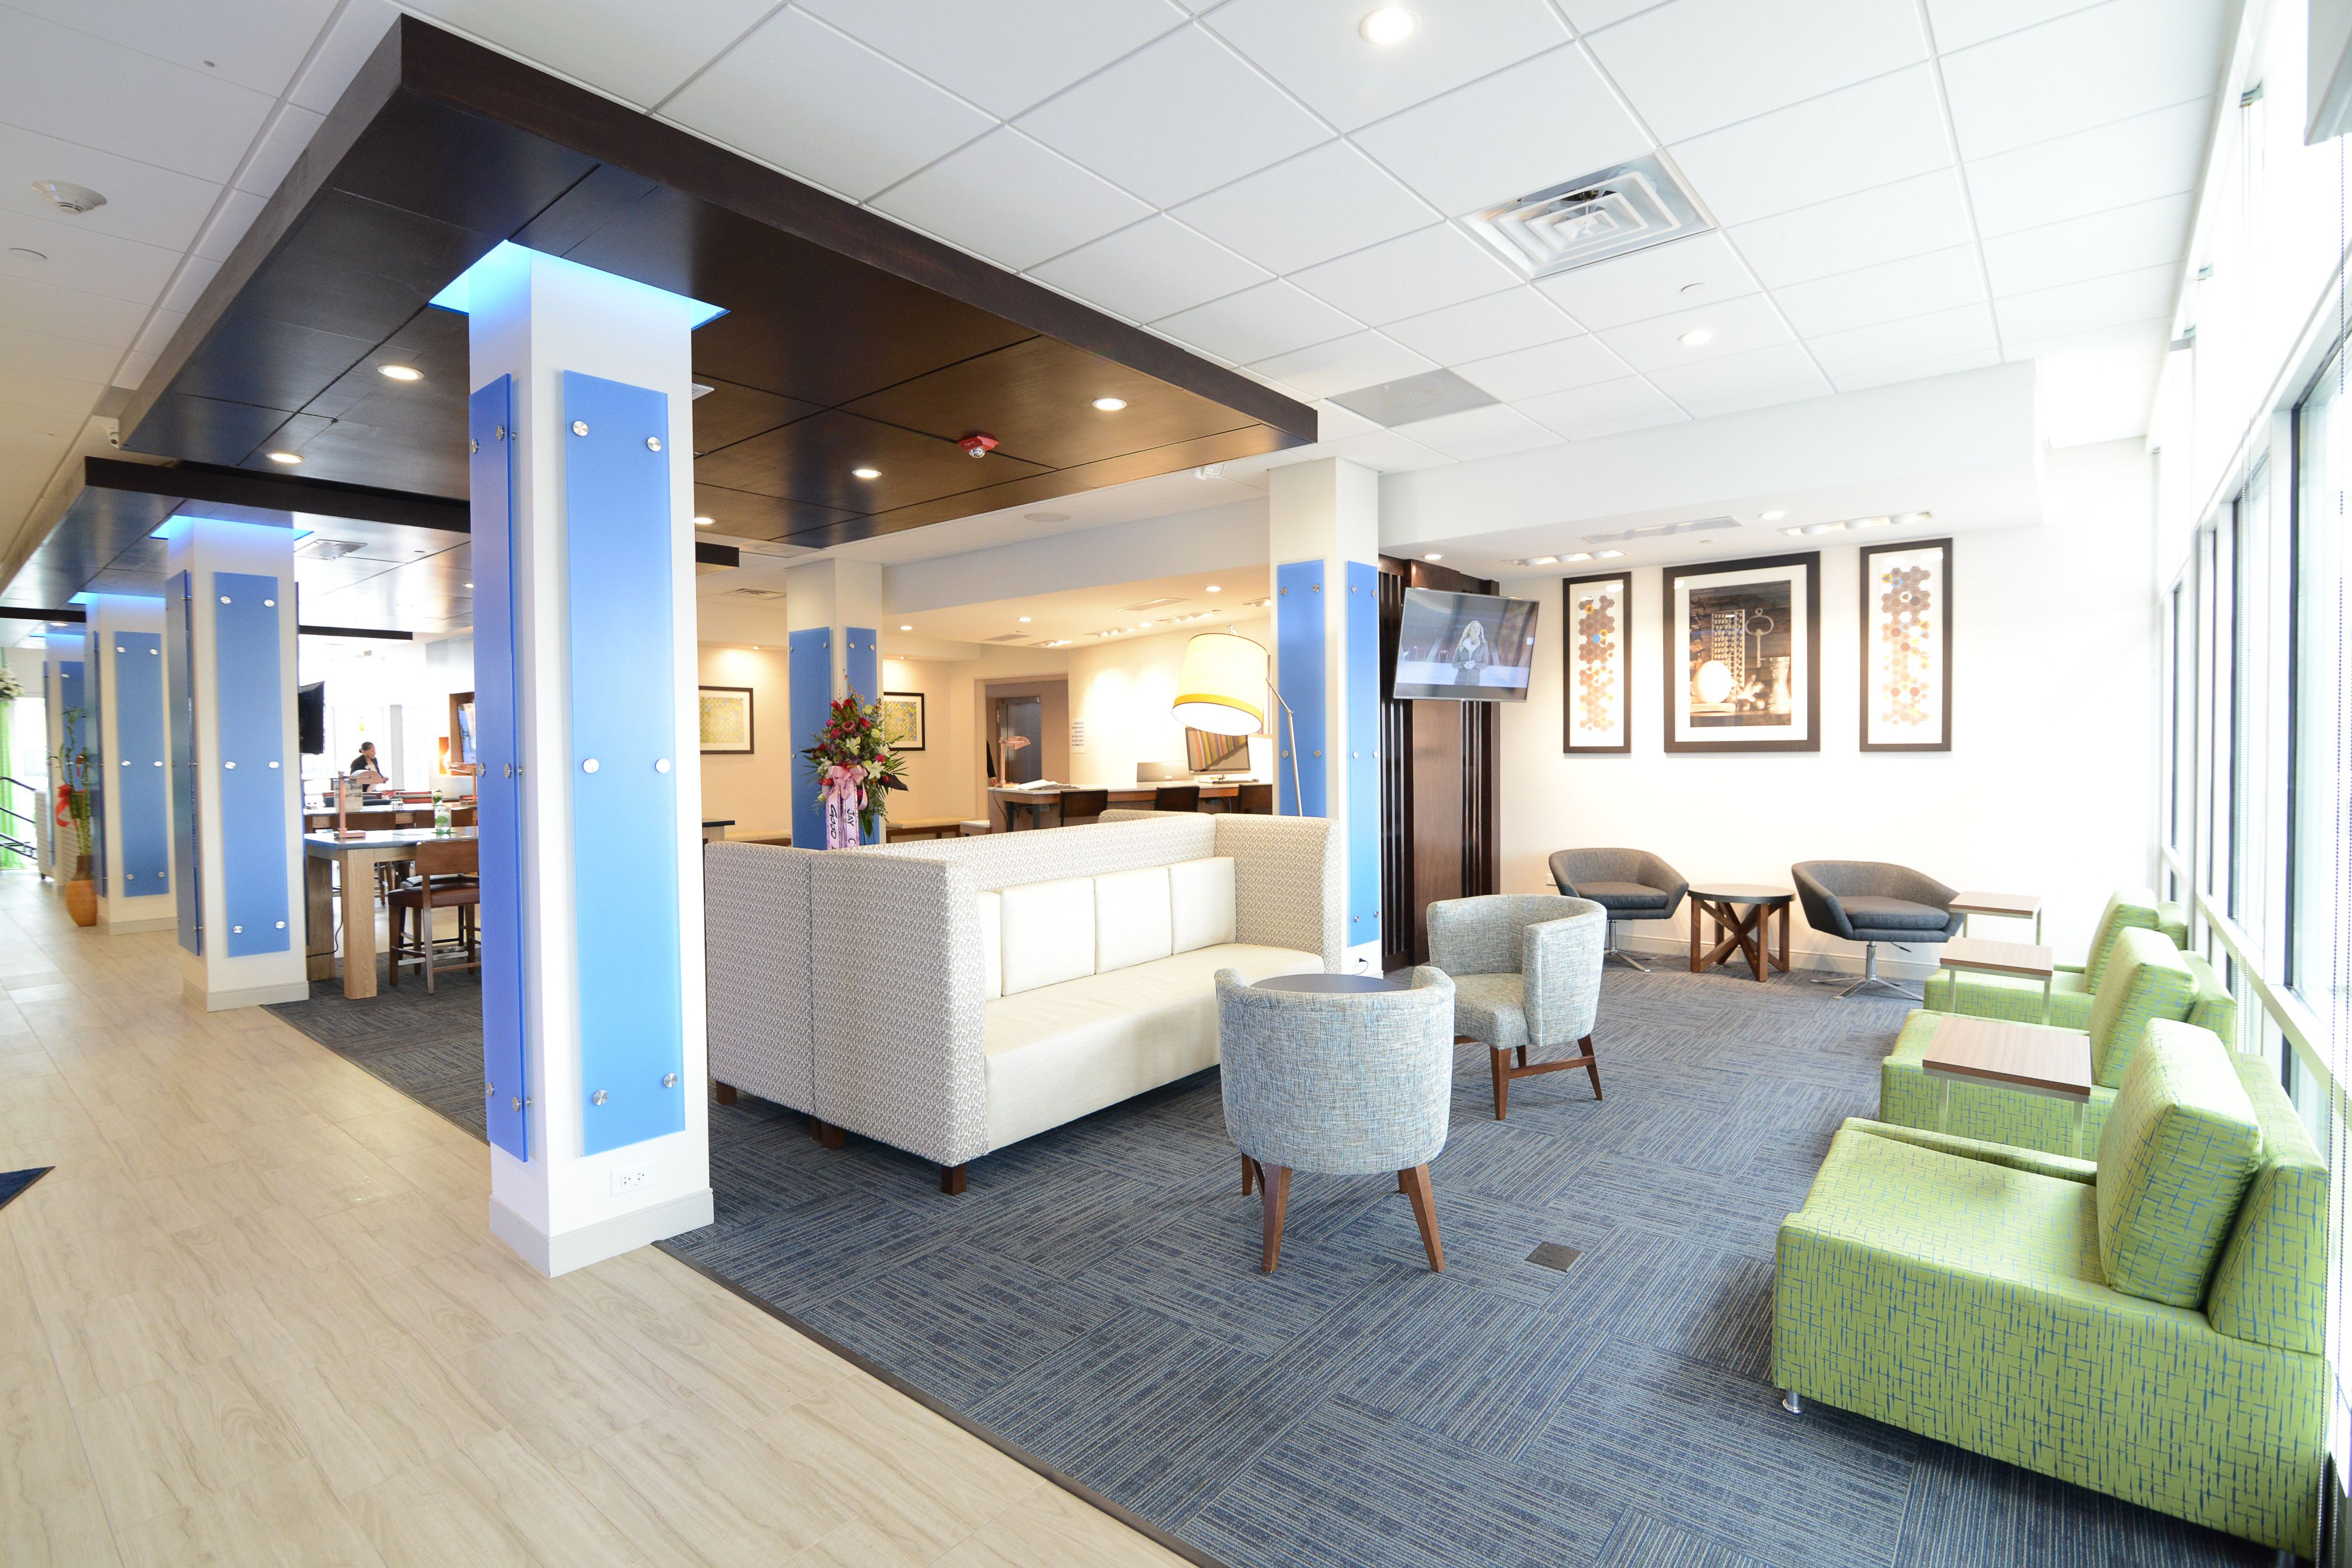 Holiday Inn Express & Suites Chicago North Shore - Niles image 4